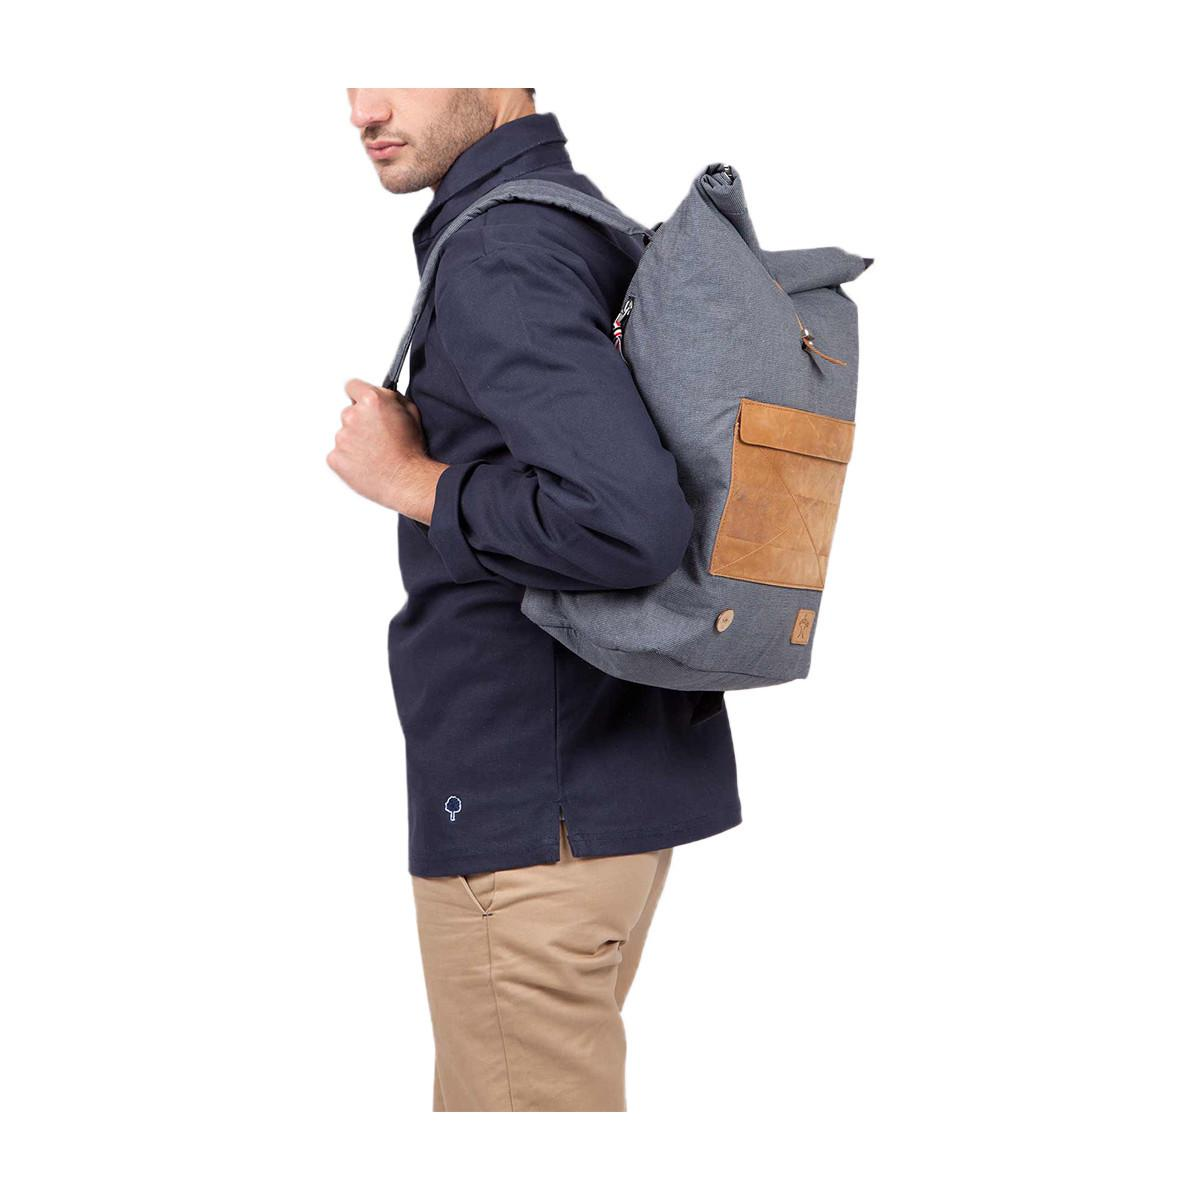 Faguo Cycling Backpack 42459 Navy Blue Men's Bag In Blue for Men